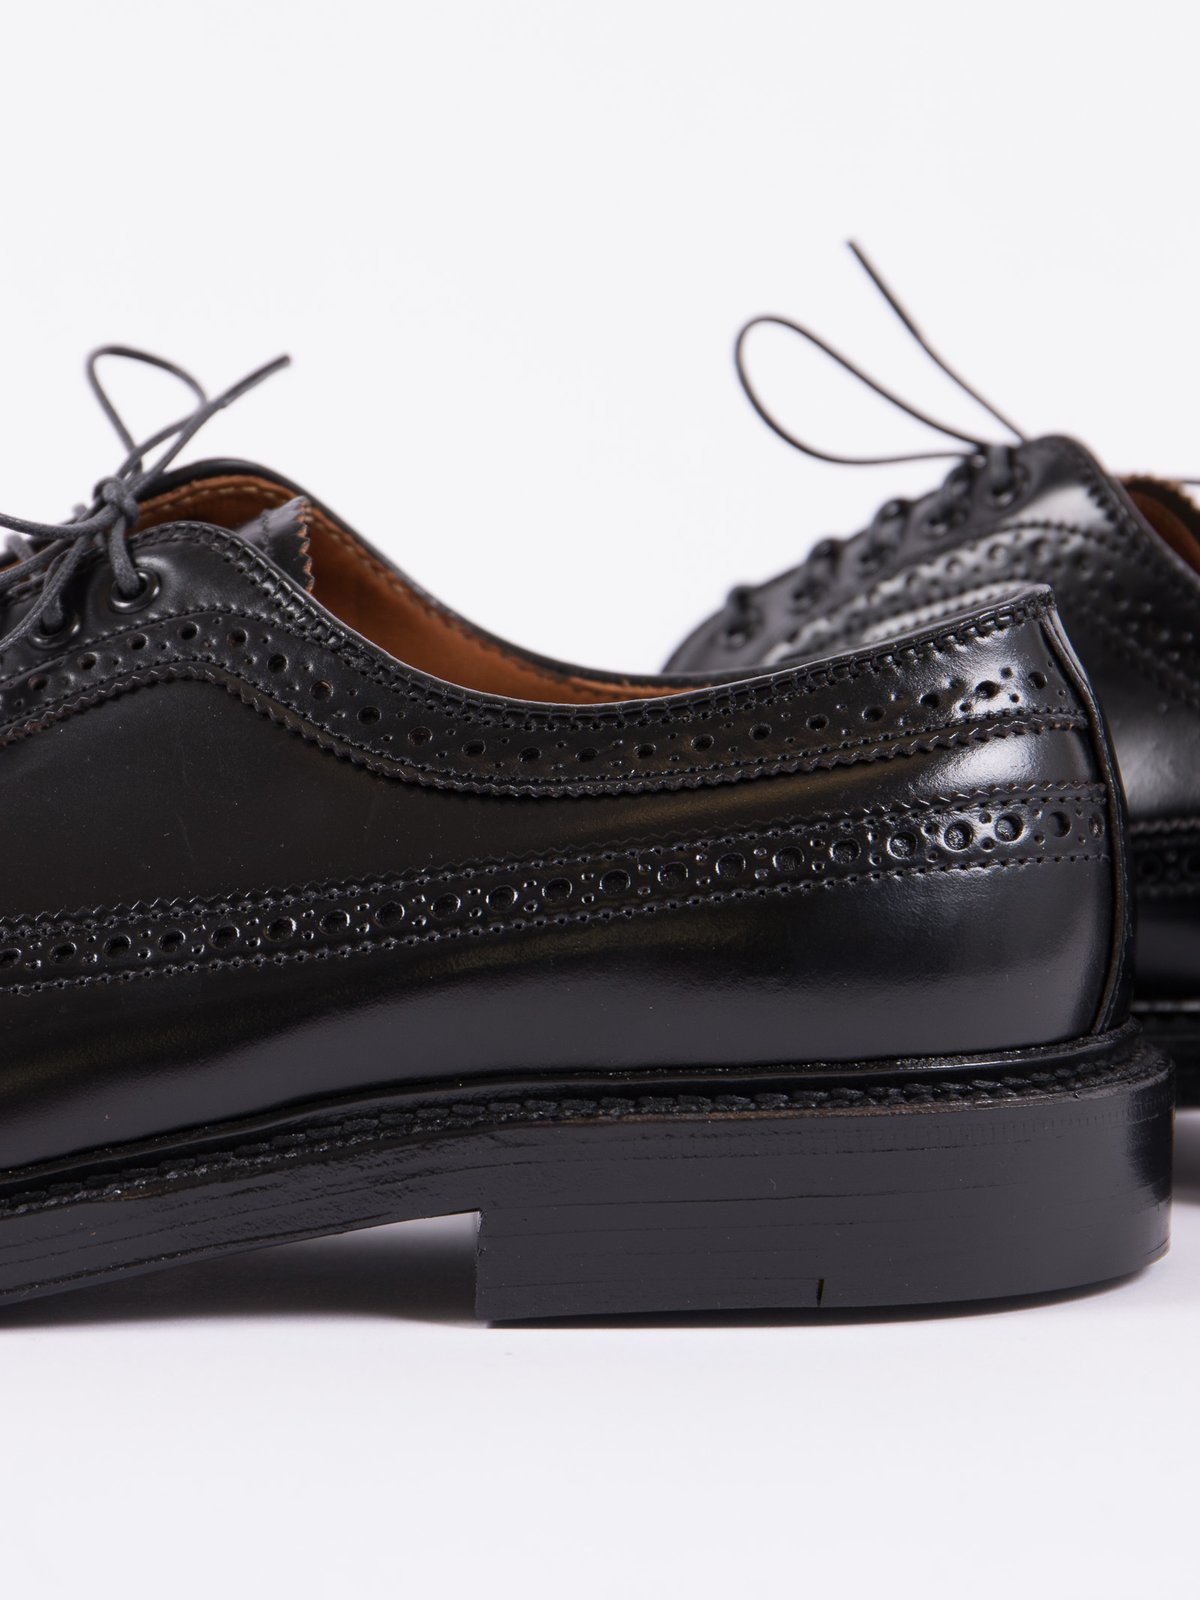 Black Cordovan Long Wing Blucher - Image 3